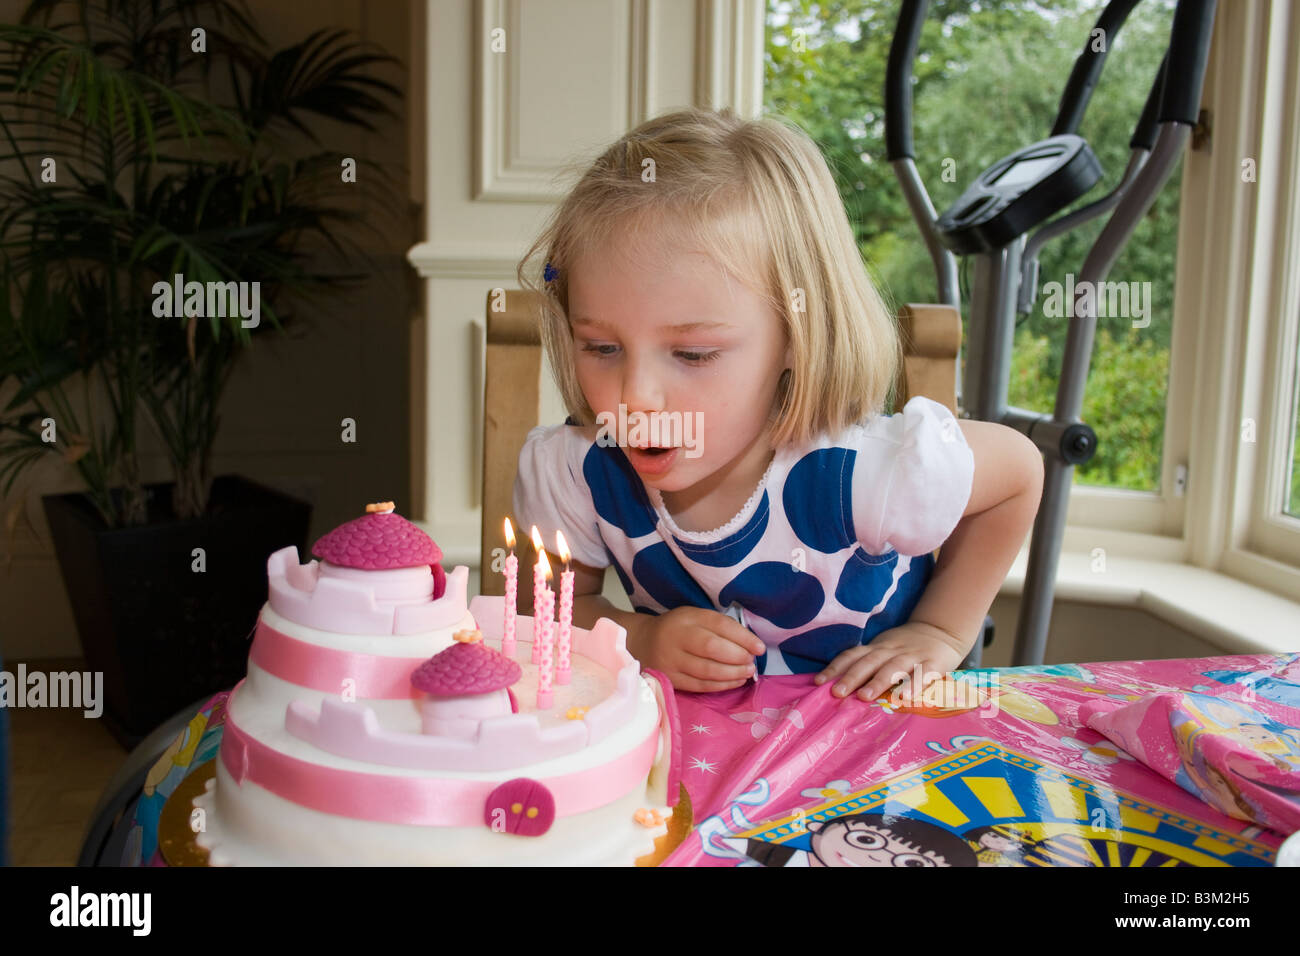 UK 4 Year Old Girl Blowing Out Candles On Birthday Cake